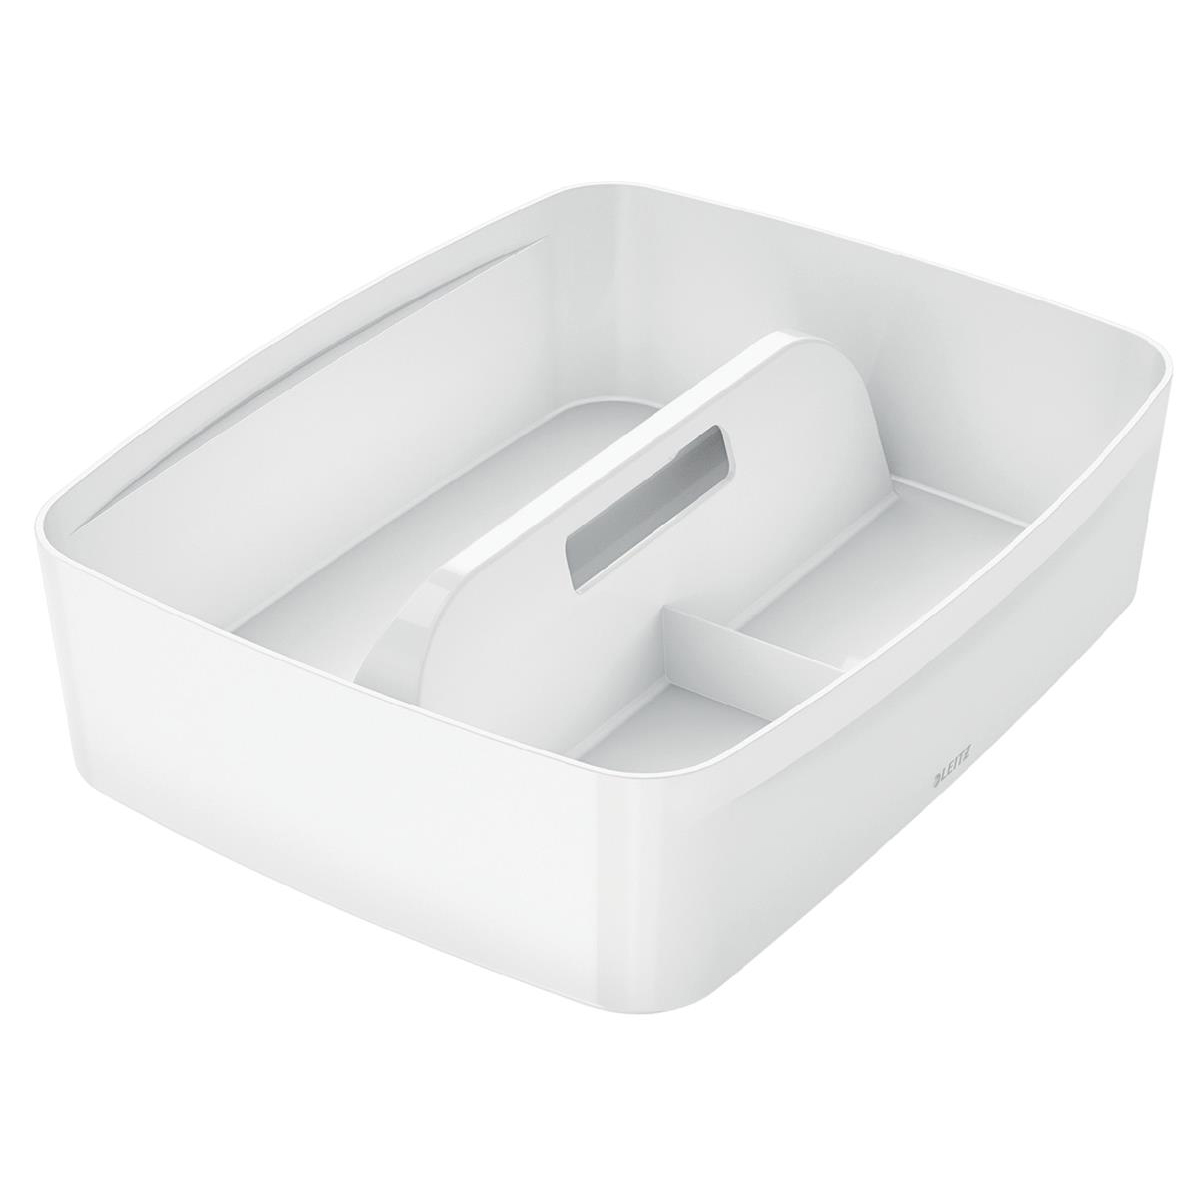 Leitz MyBox Organiser Tray with Handle Plastic(ABS) W375xD307xH101mm White Ref 53220001